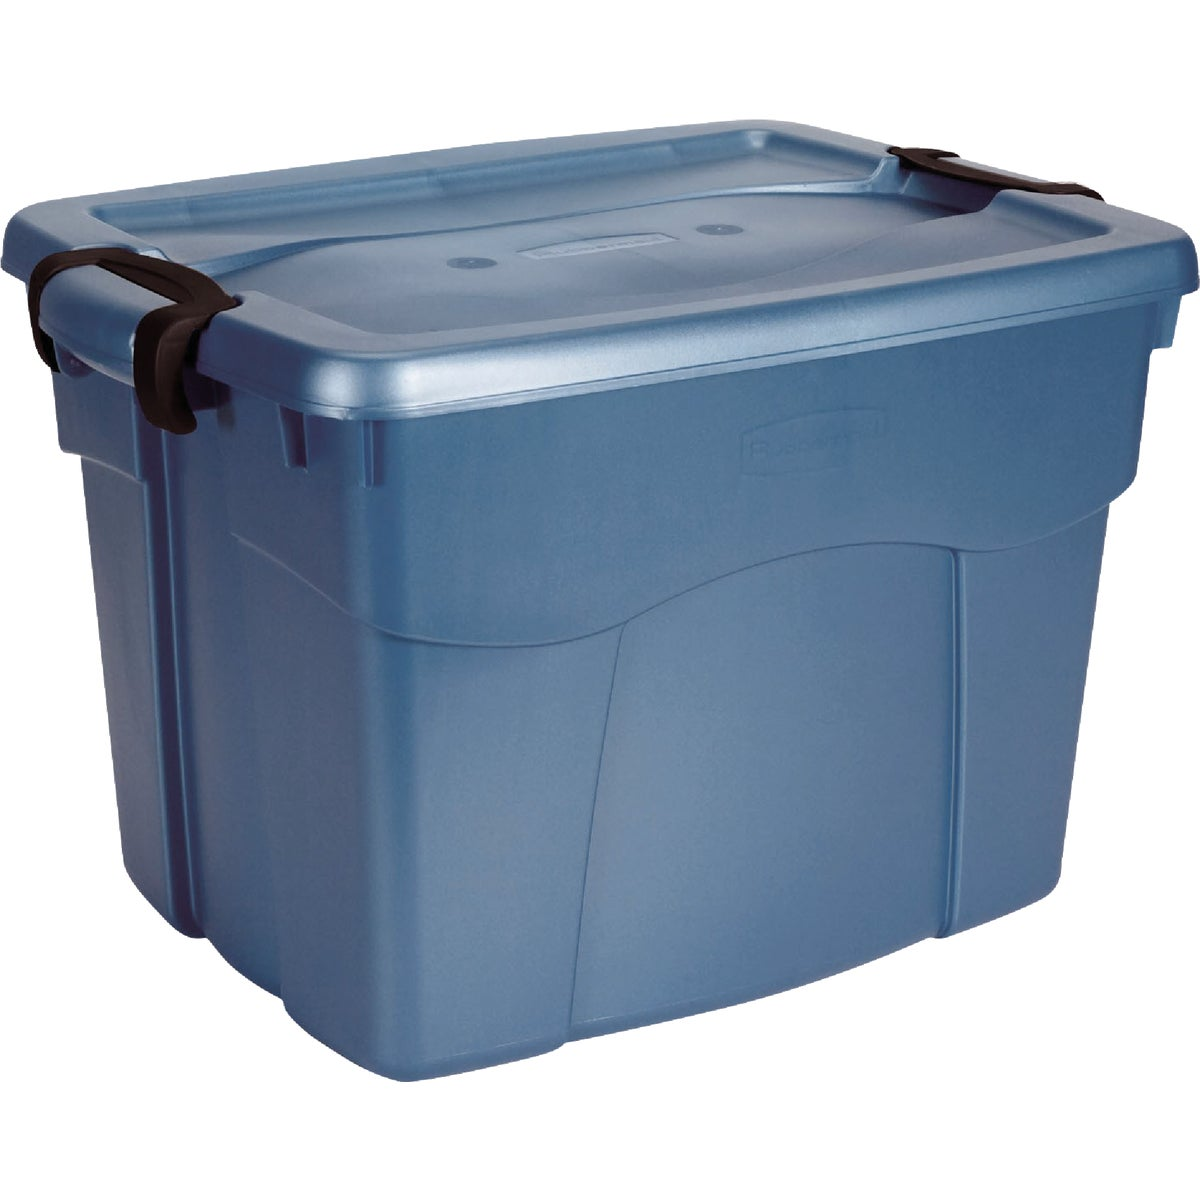 22GAL STORAGE TOTE - FG2161CPDIM by Rubbermaid Home